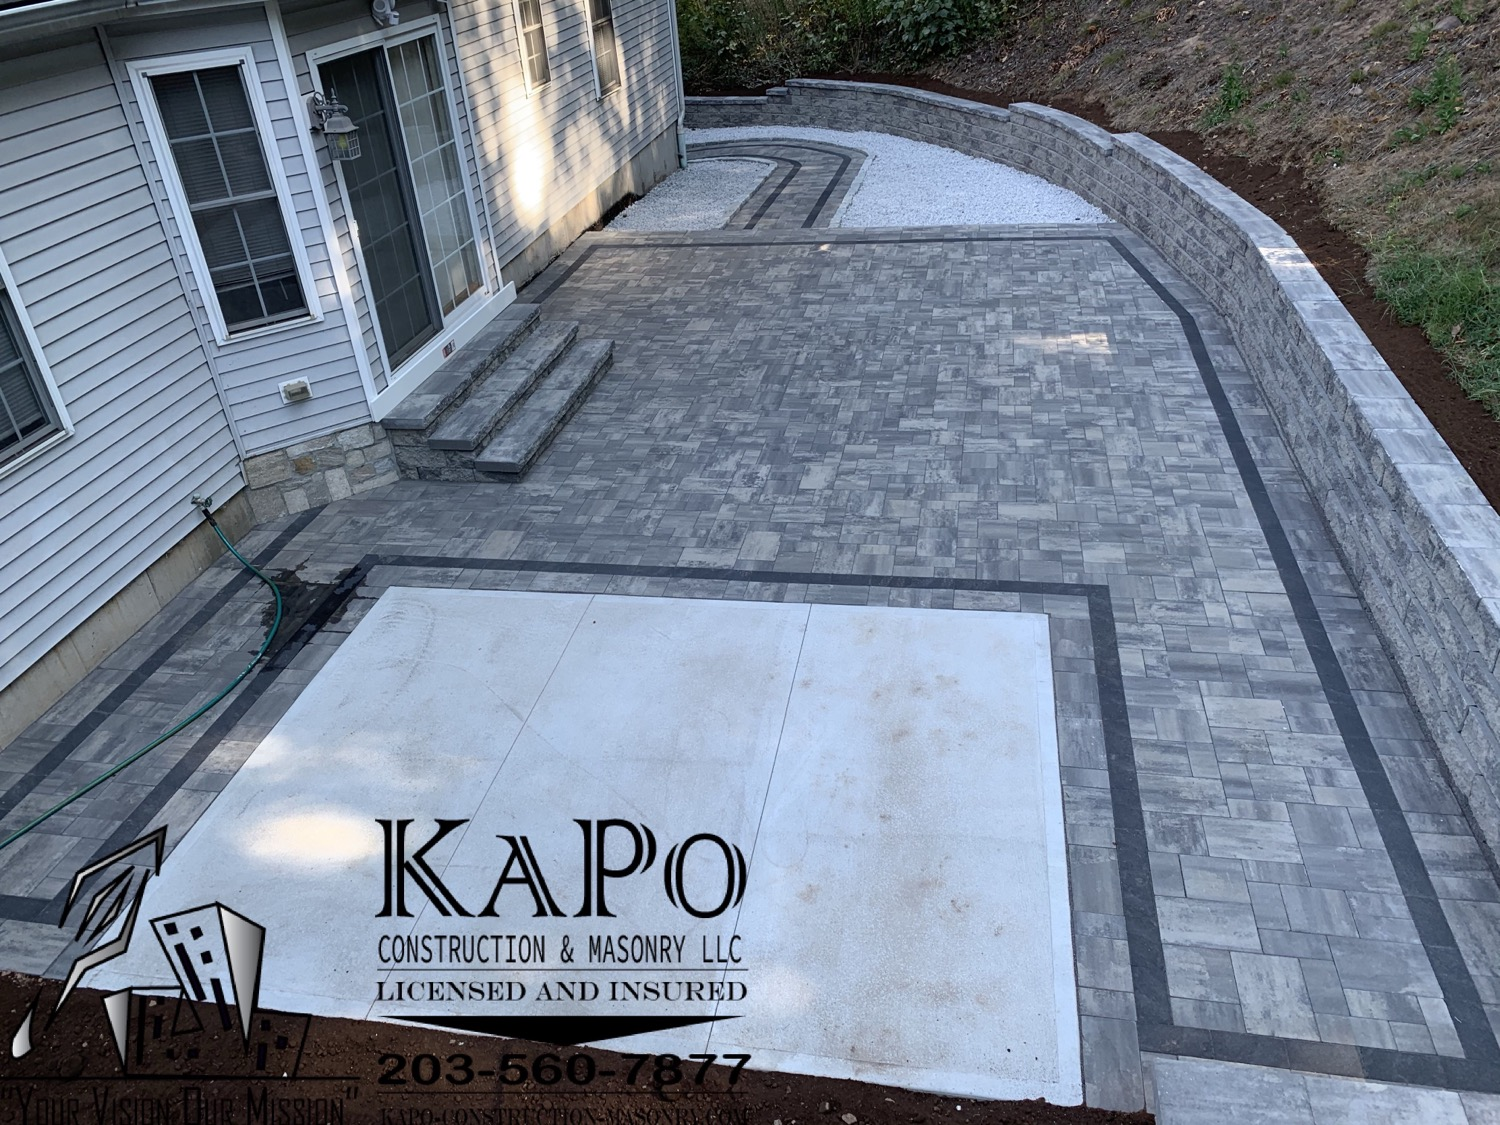 Paver Patio, Paver Walkway, Concrete Slab, Retaining Wall, Steps, Stone Veneer and Cobblestone Edgin